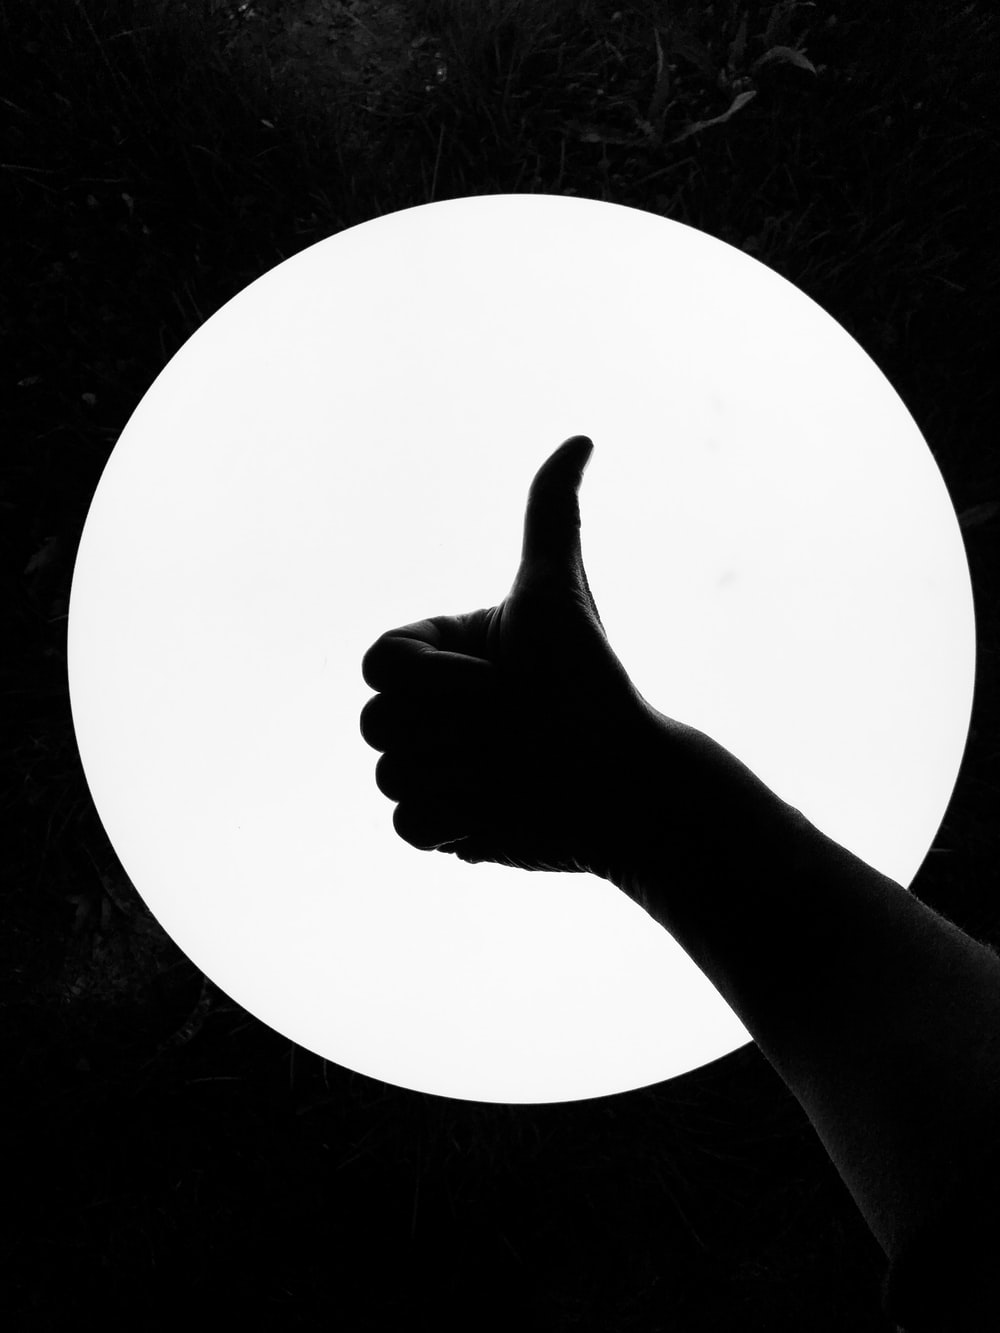 persons hand on white round board